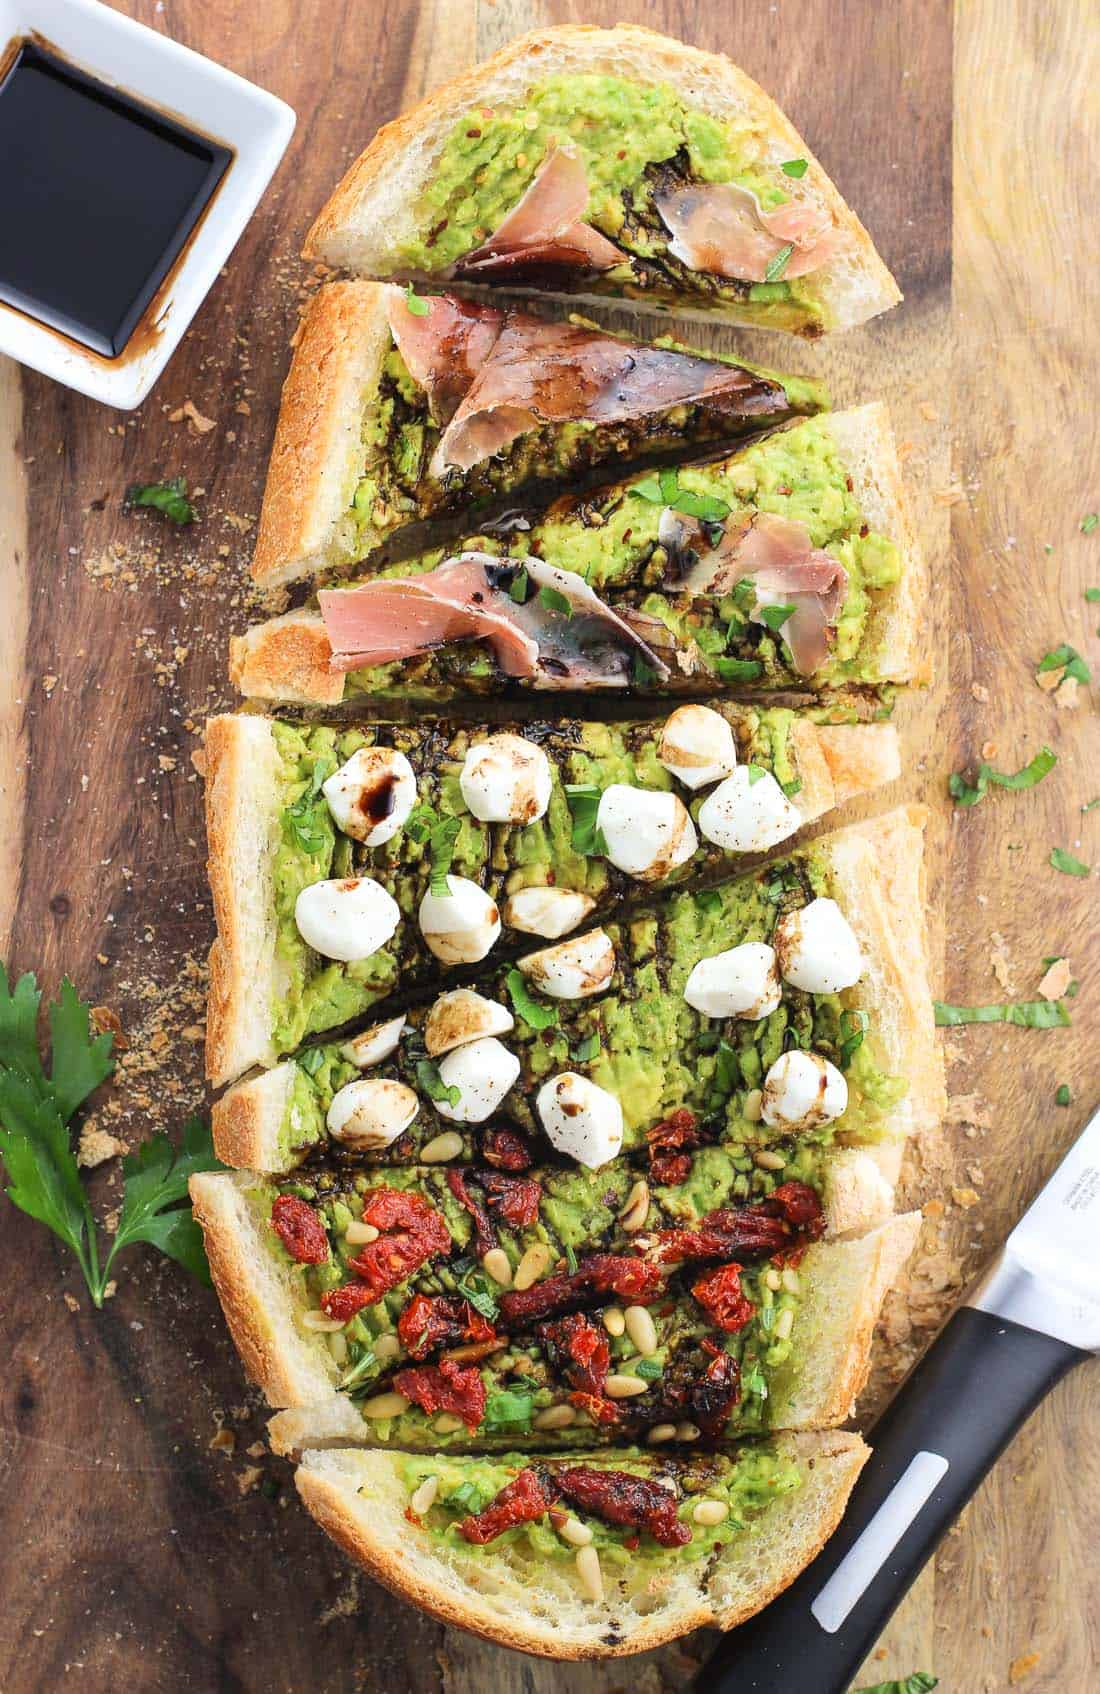 Avocado toast meets garlic bread in this party-perfect loaded avocado garlic bread. Top garlic bread with avocado and your favorite toppings and slice for a fun appetizer, snack, or light meal.